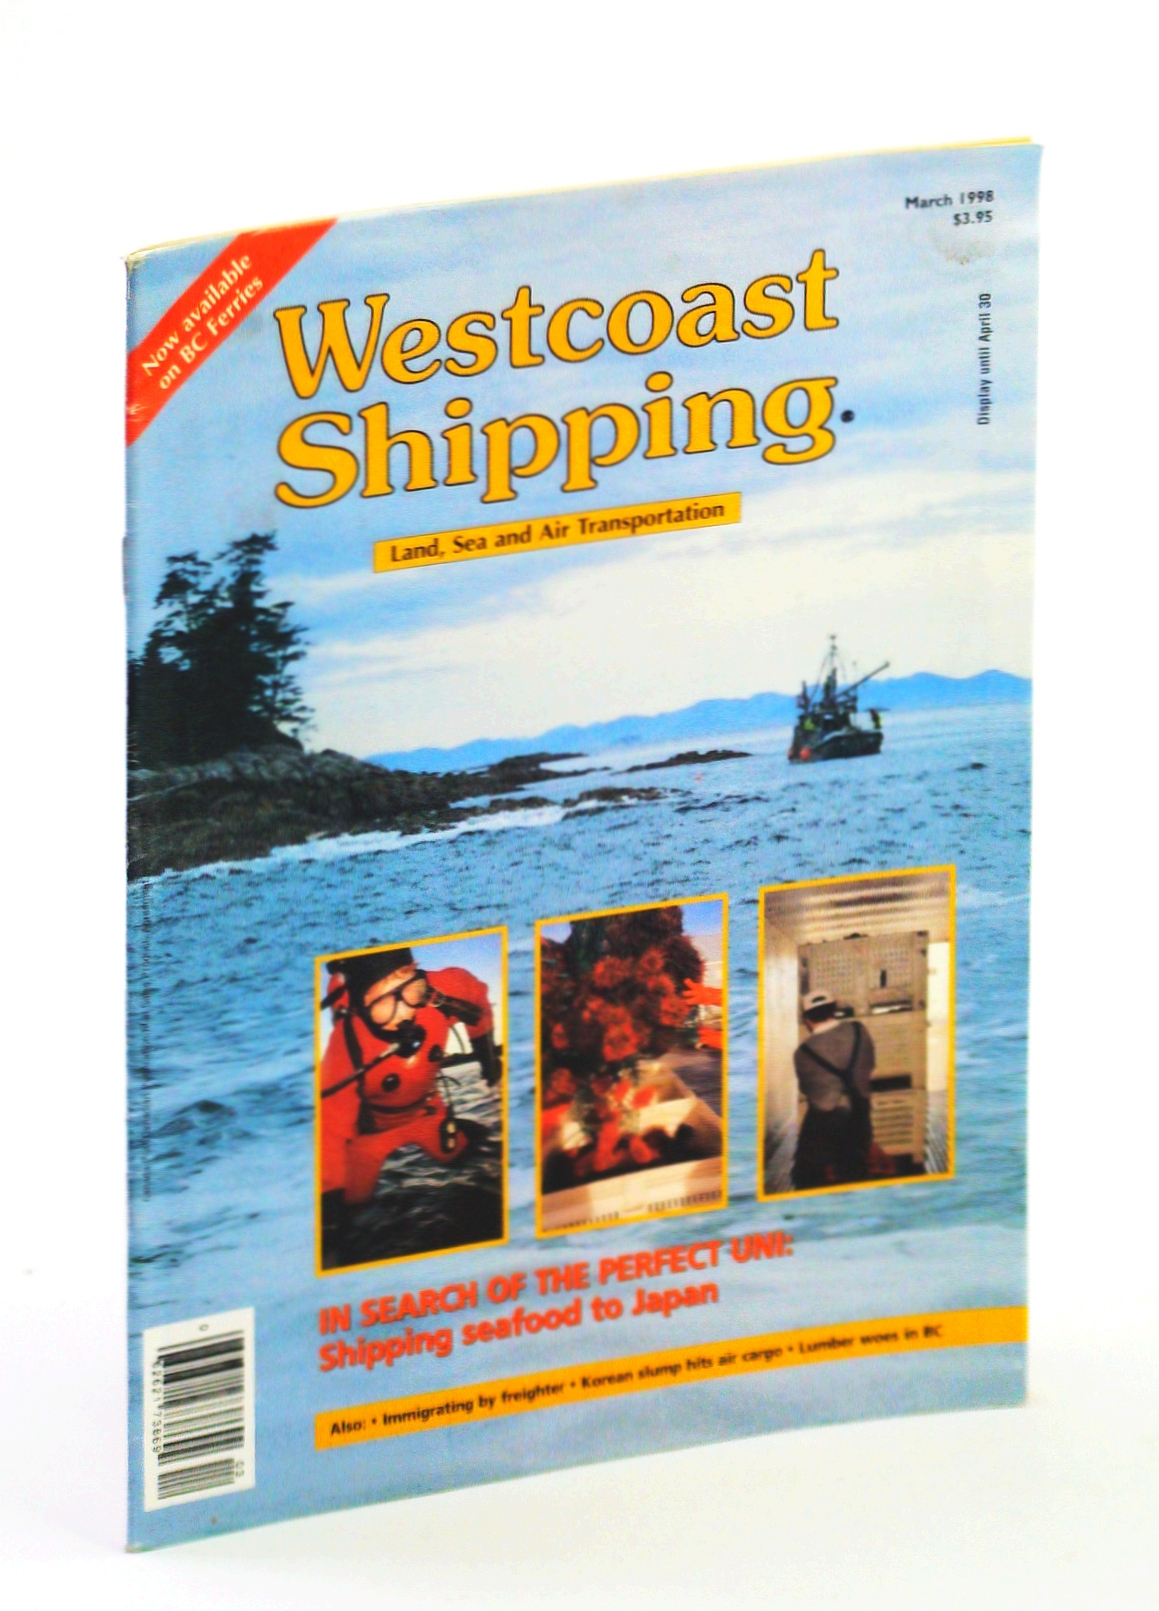 Image for Westcoast Shipping [Magazine] - Land, Sea, Air Transportation, March 1998